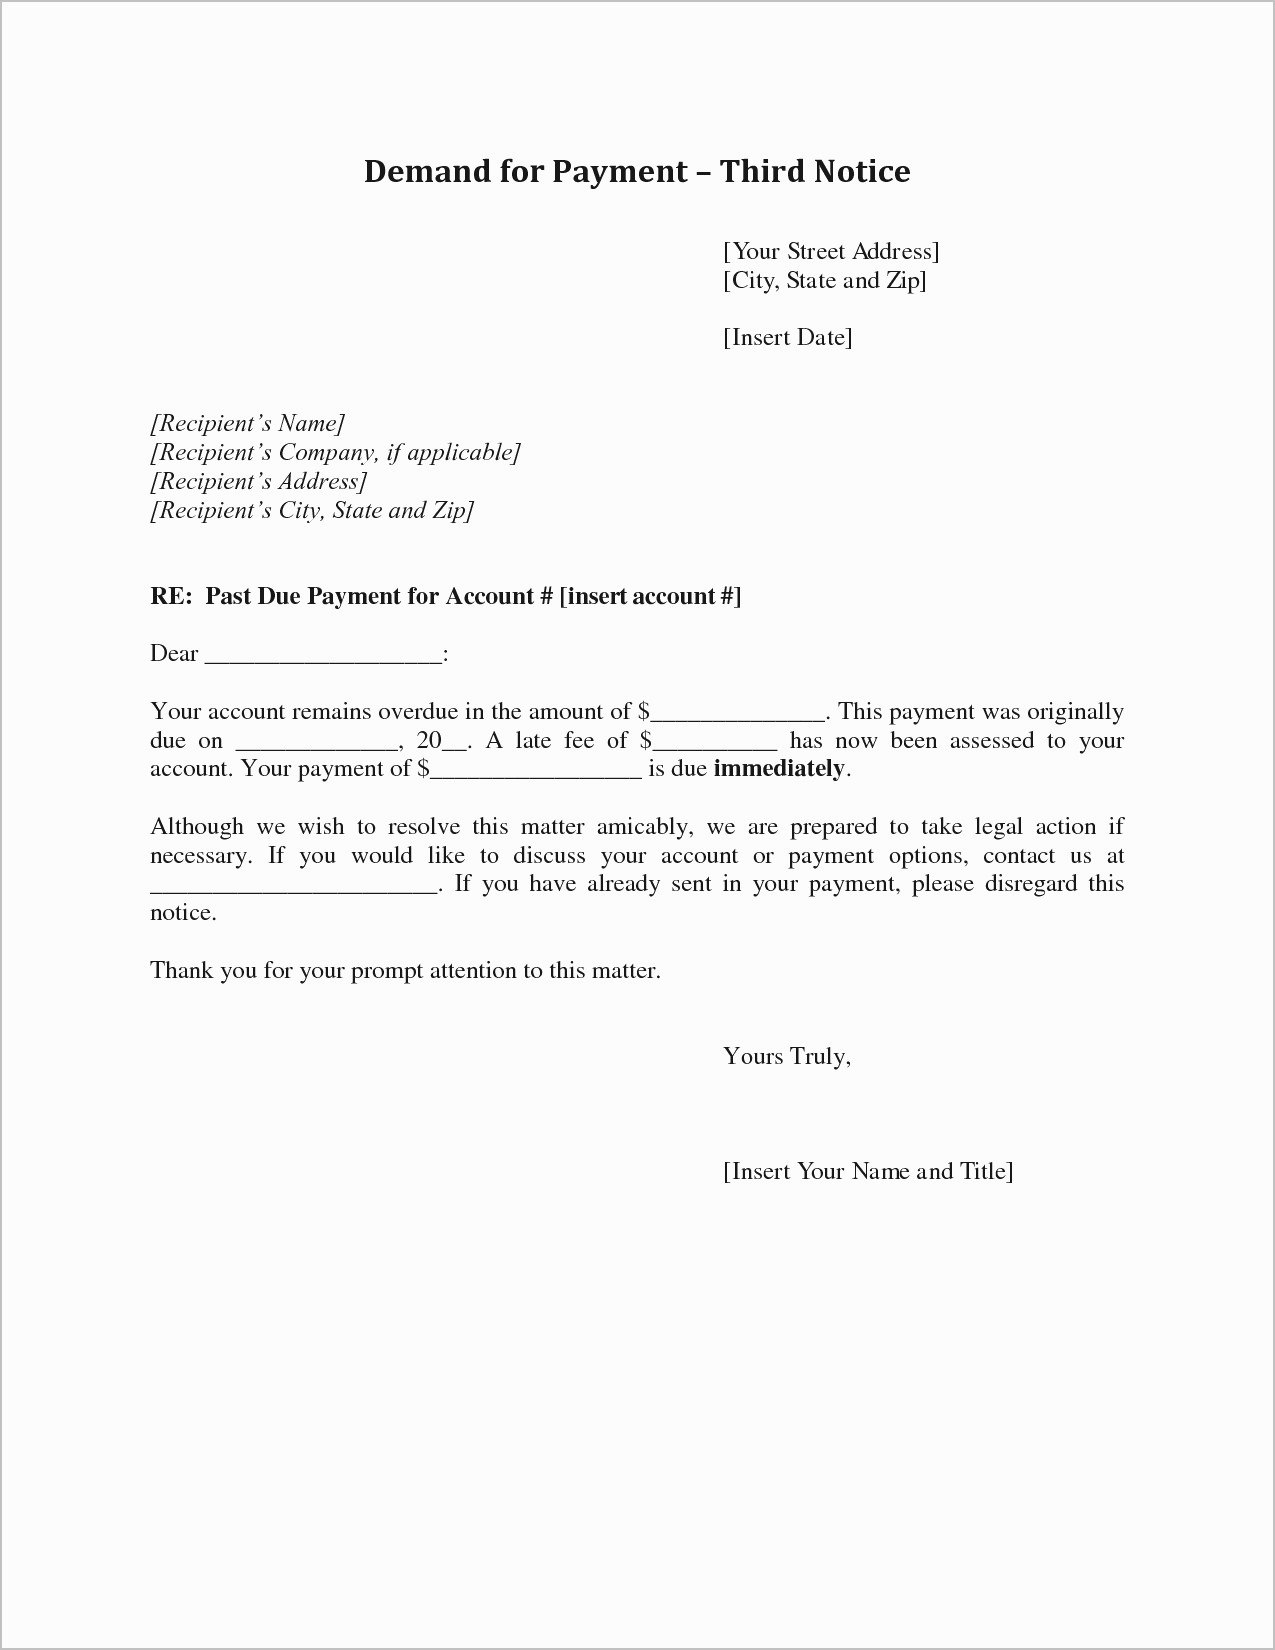 Demand for Payment Letter Template Free - Sample Demand Letter for Unpaid Rent Beautiful Letter Od Demand